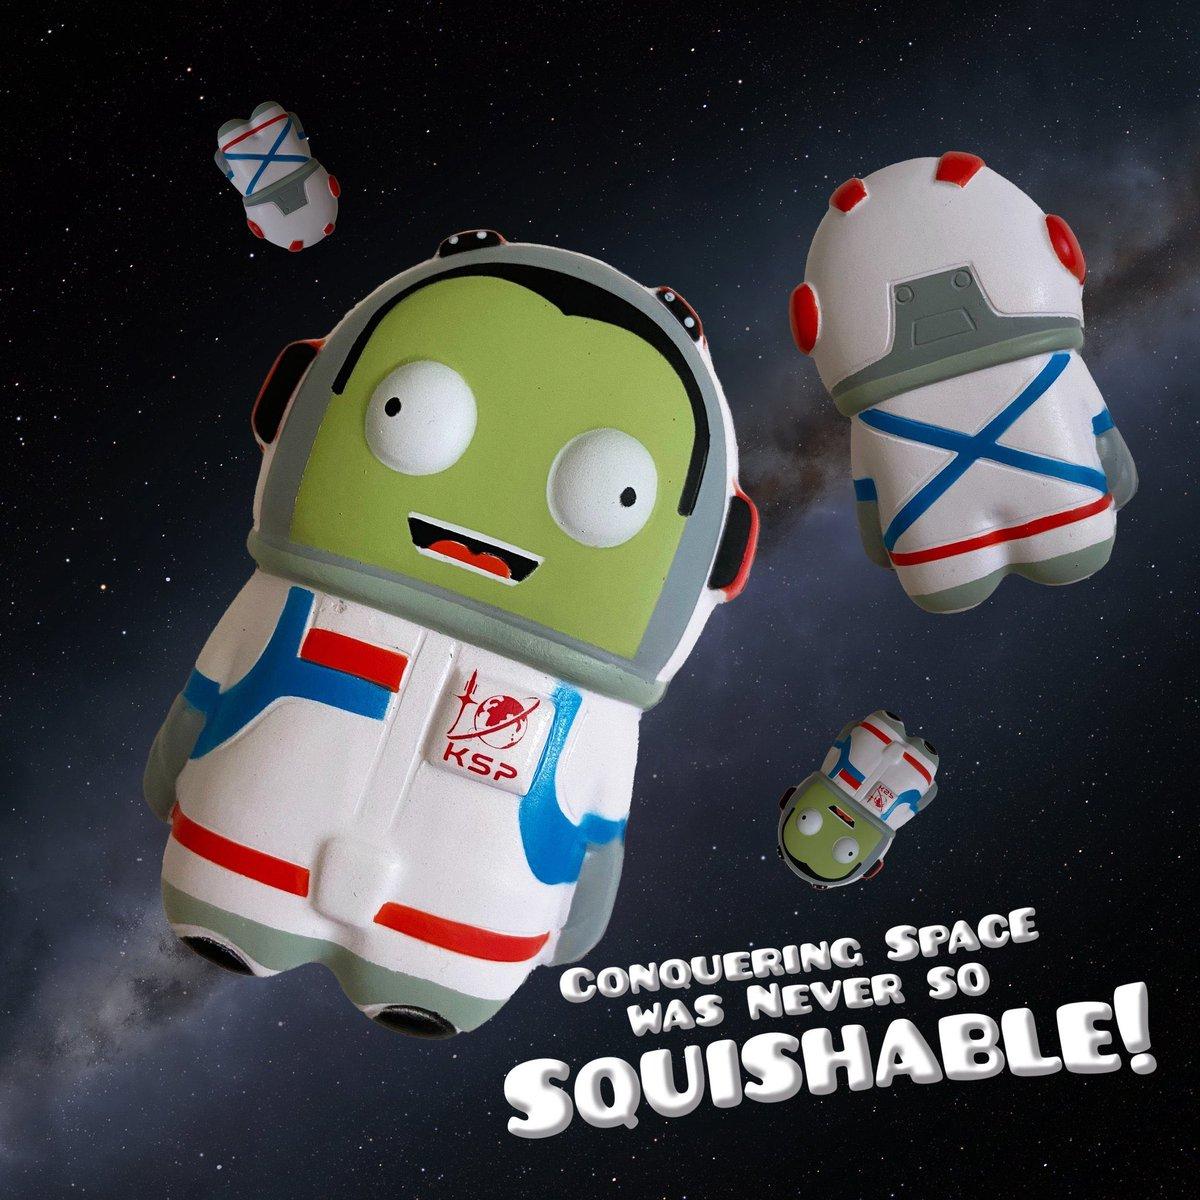 Hey Kerbonauts! Remember Squishy Jeb it's waiting for you in Private Division store! ✨🚀✨  Get yours here! https://t.co/X8sG8hRXnQ https://t.co/P3TvjpHf9f